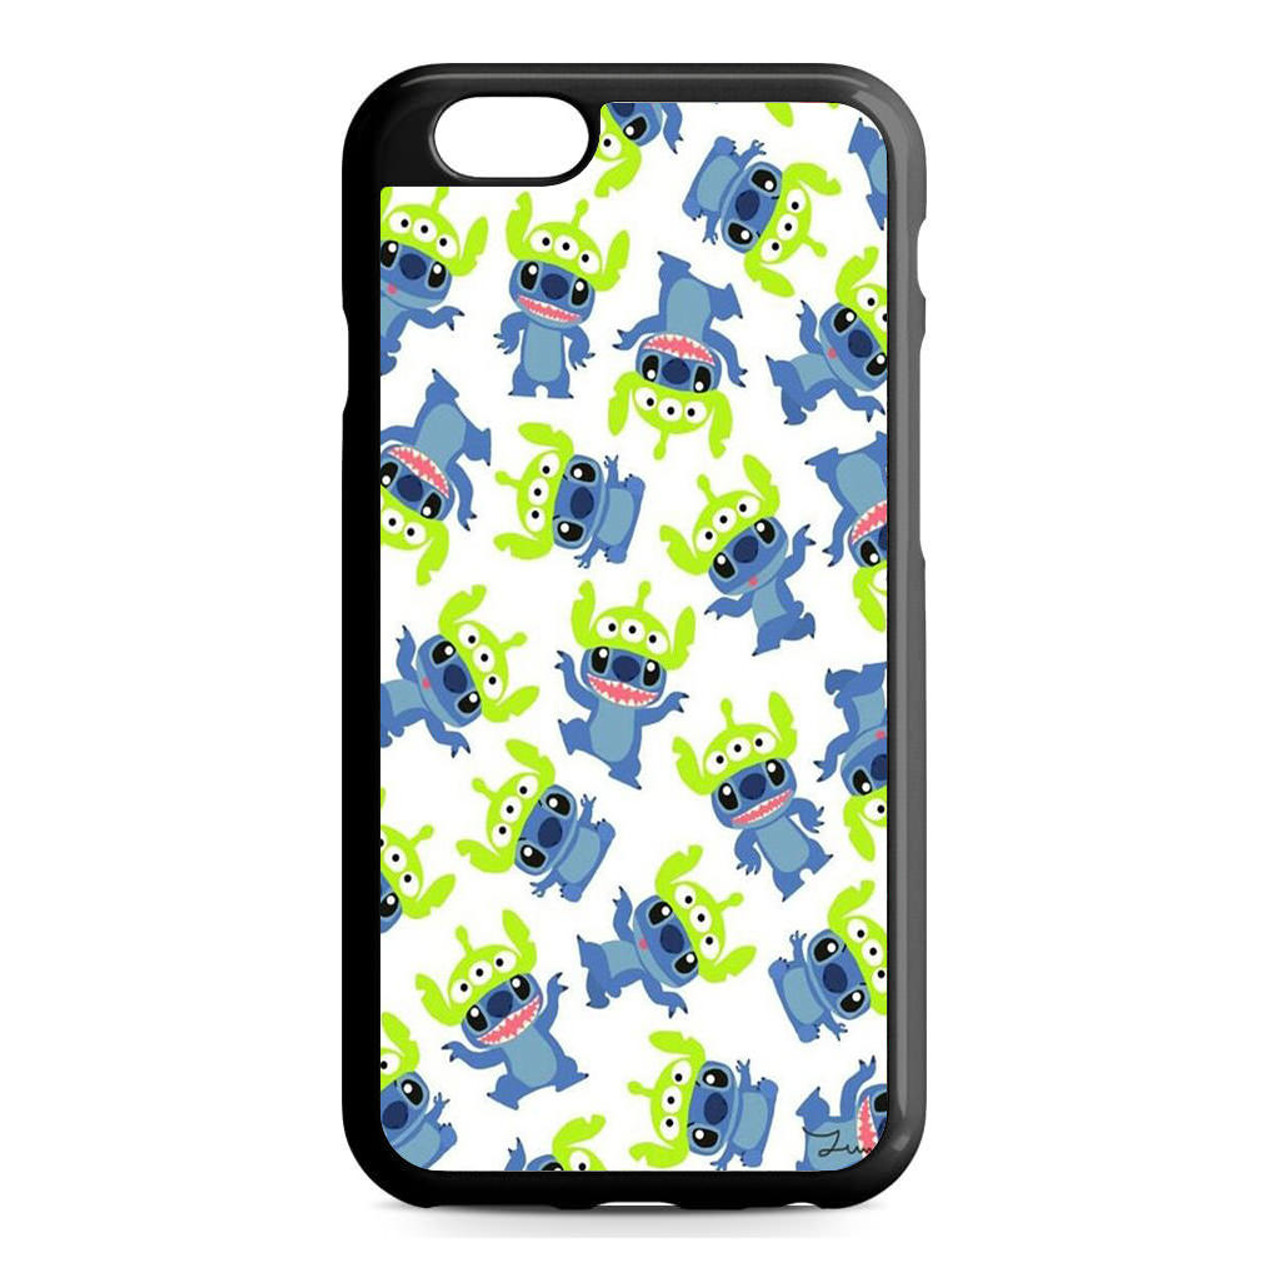 0558281acfb4 Stich Collage iPhone 6 6S Case - CASESHUNTER